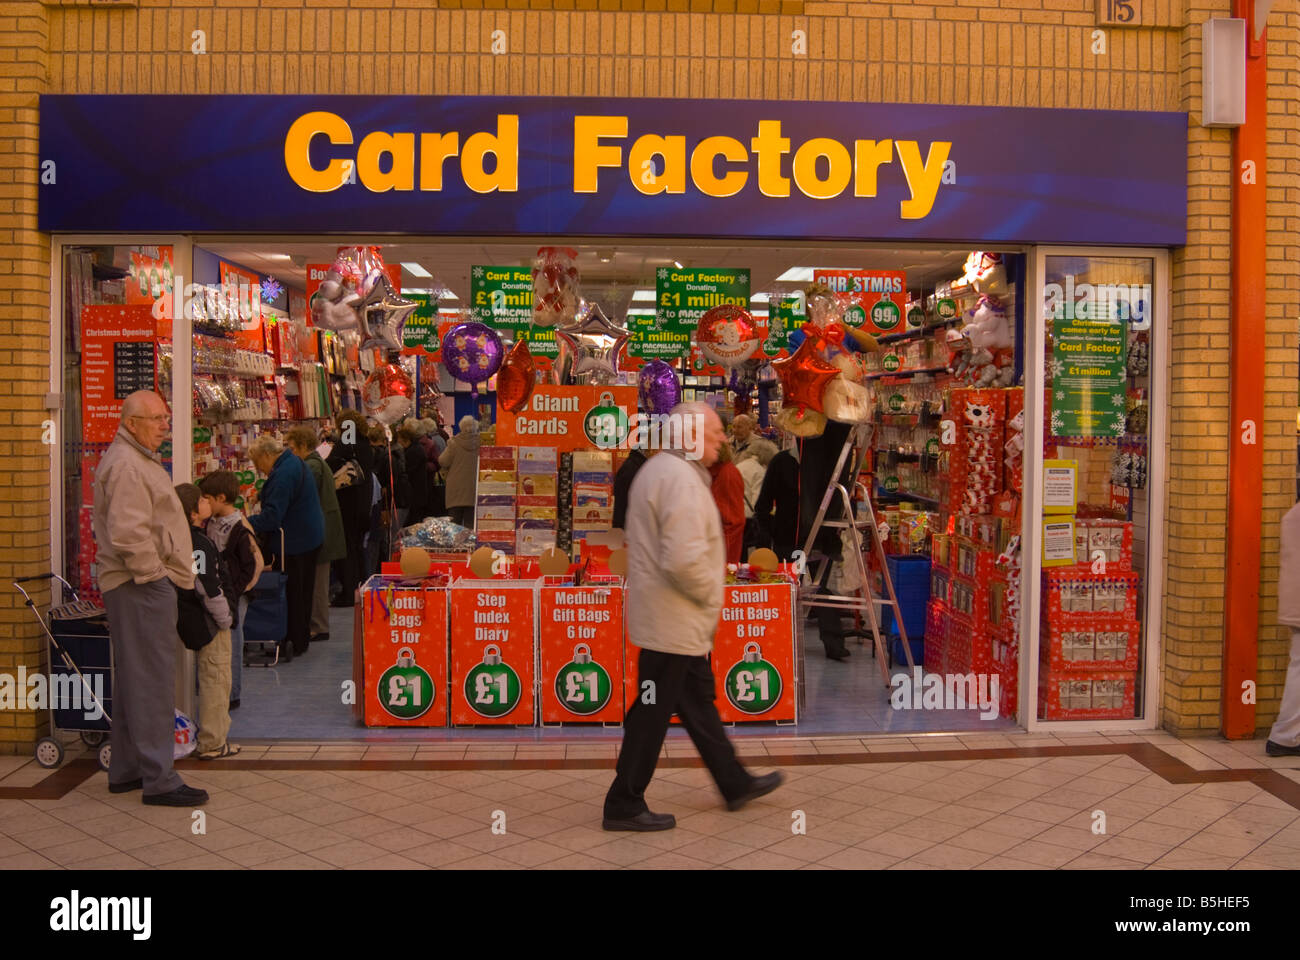 The Card Factory Shop In Lowestoft Suffolk Uk Selling Greeting Cards